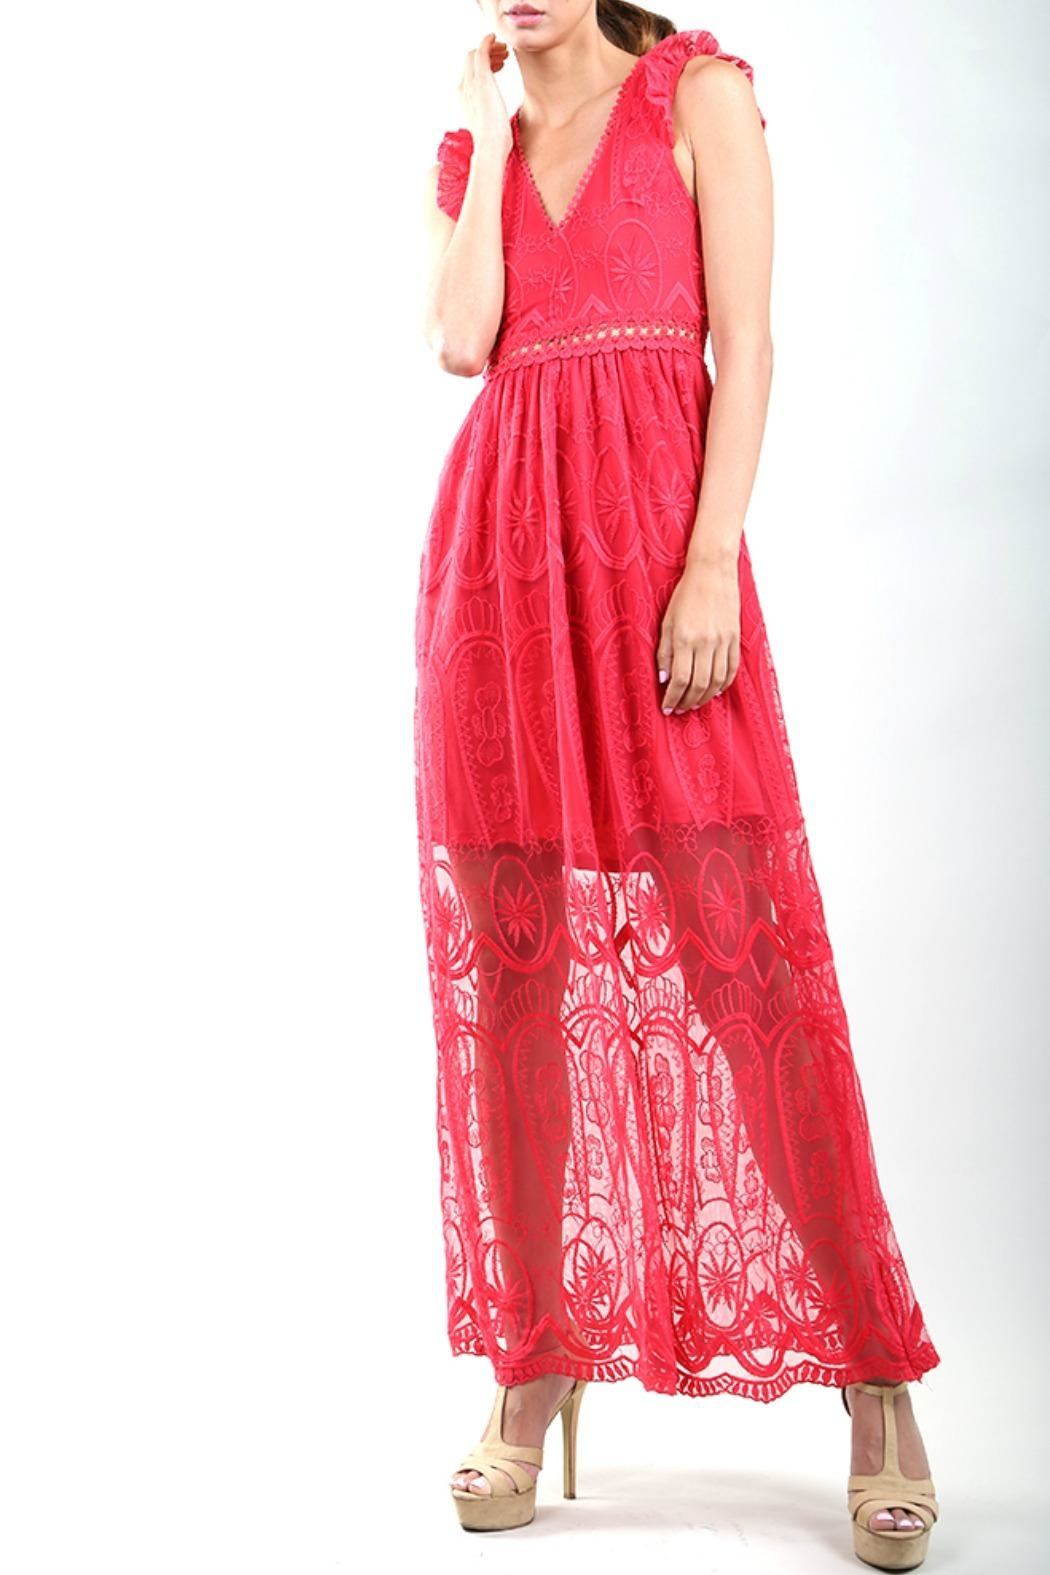 BEULAH STYLE Rose Red Dress - Main Image